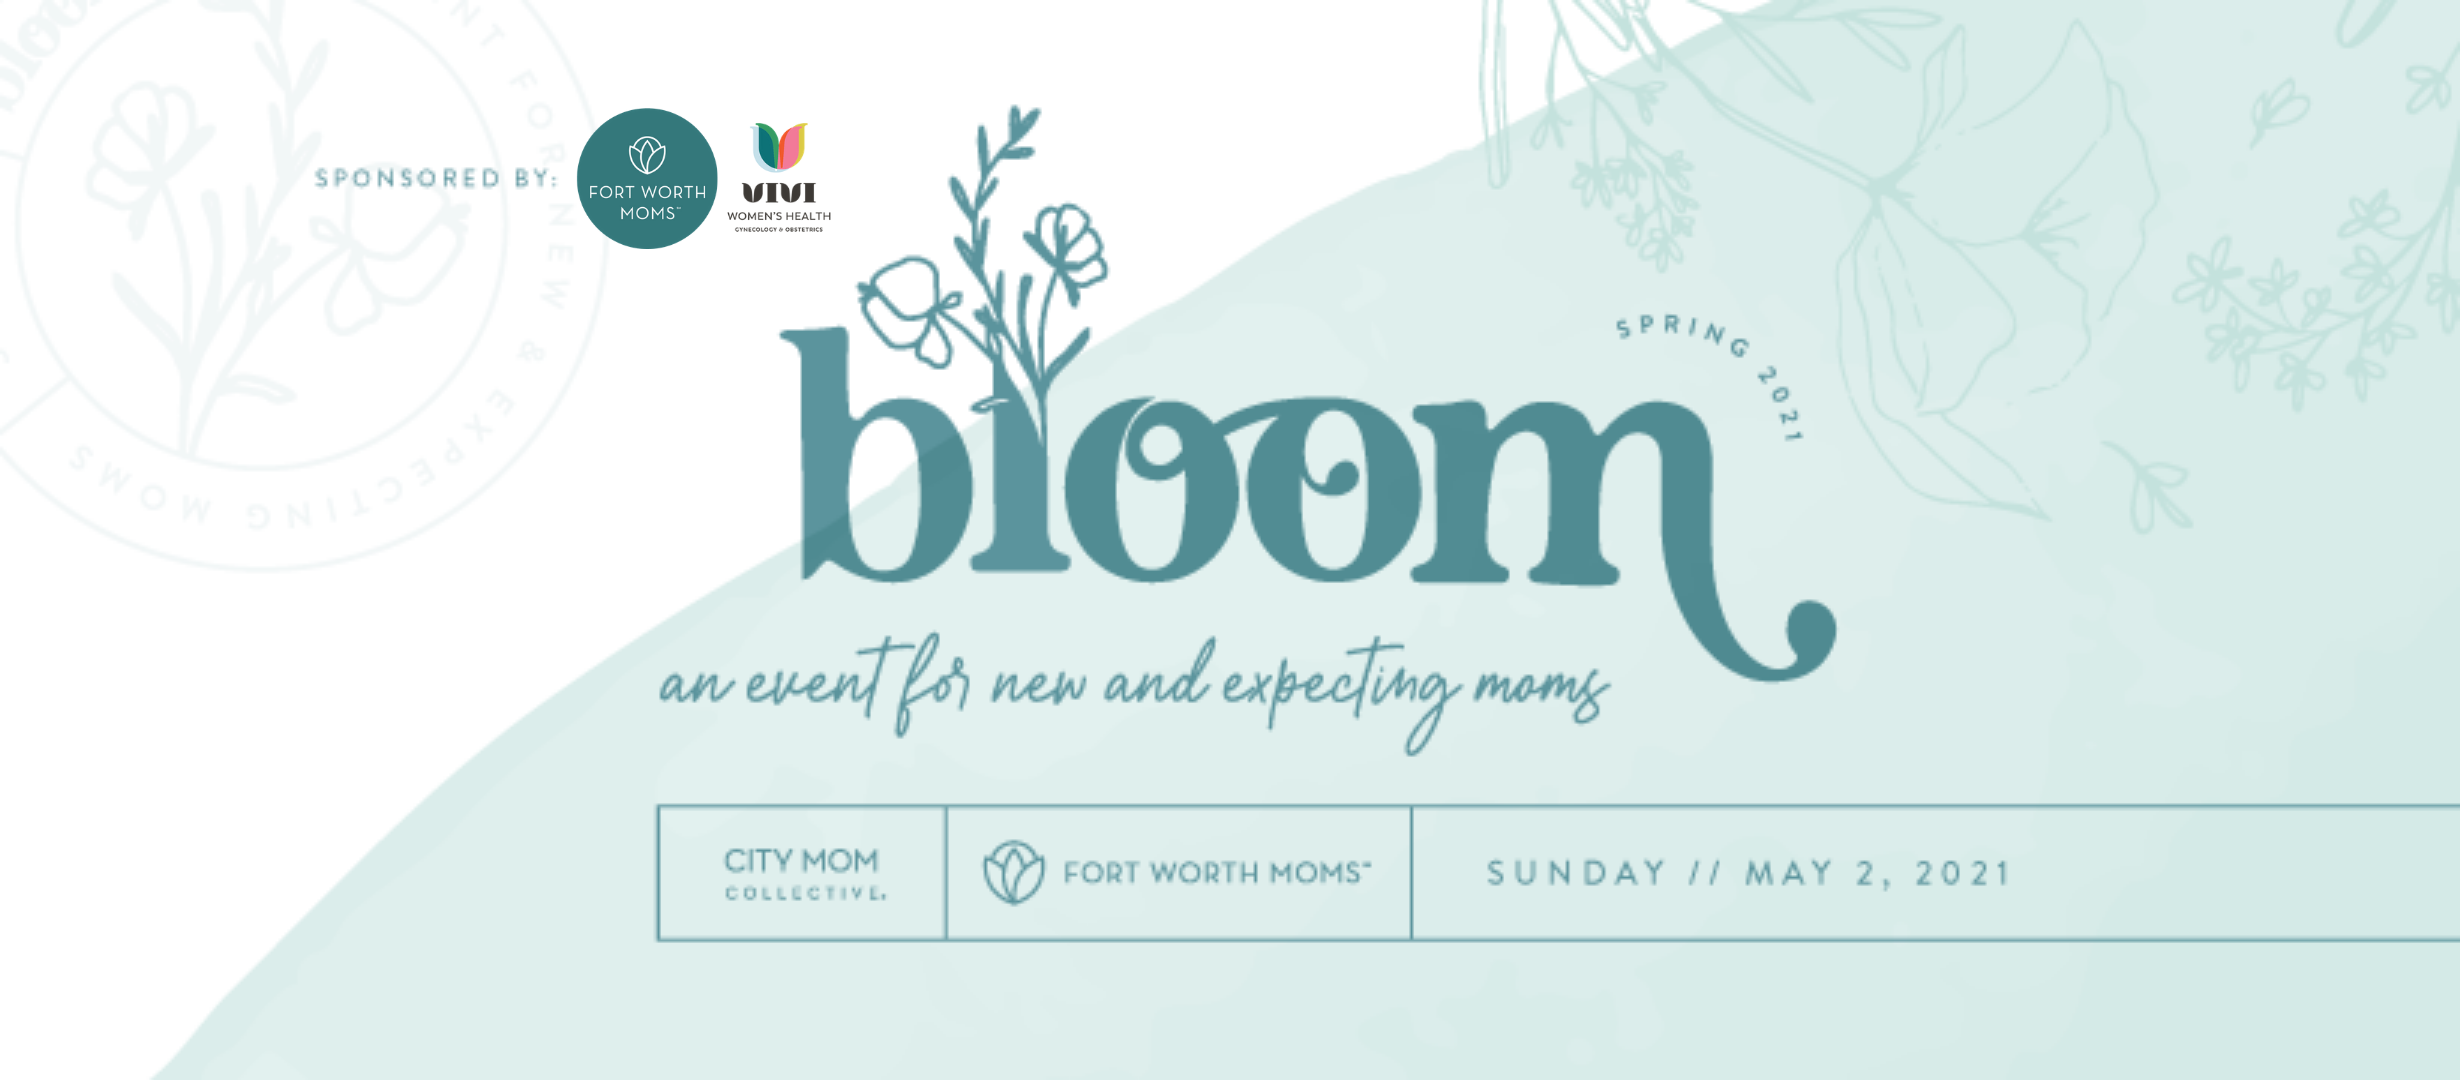 Pregnant and new moms to kiddos ages zero to two can attend Bloom 2021.